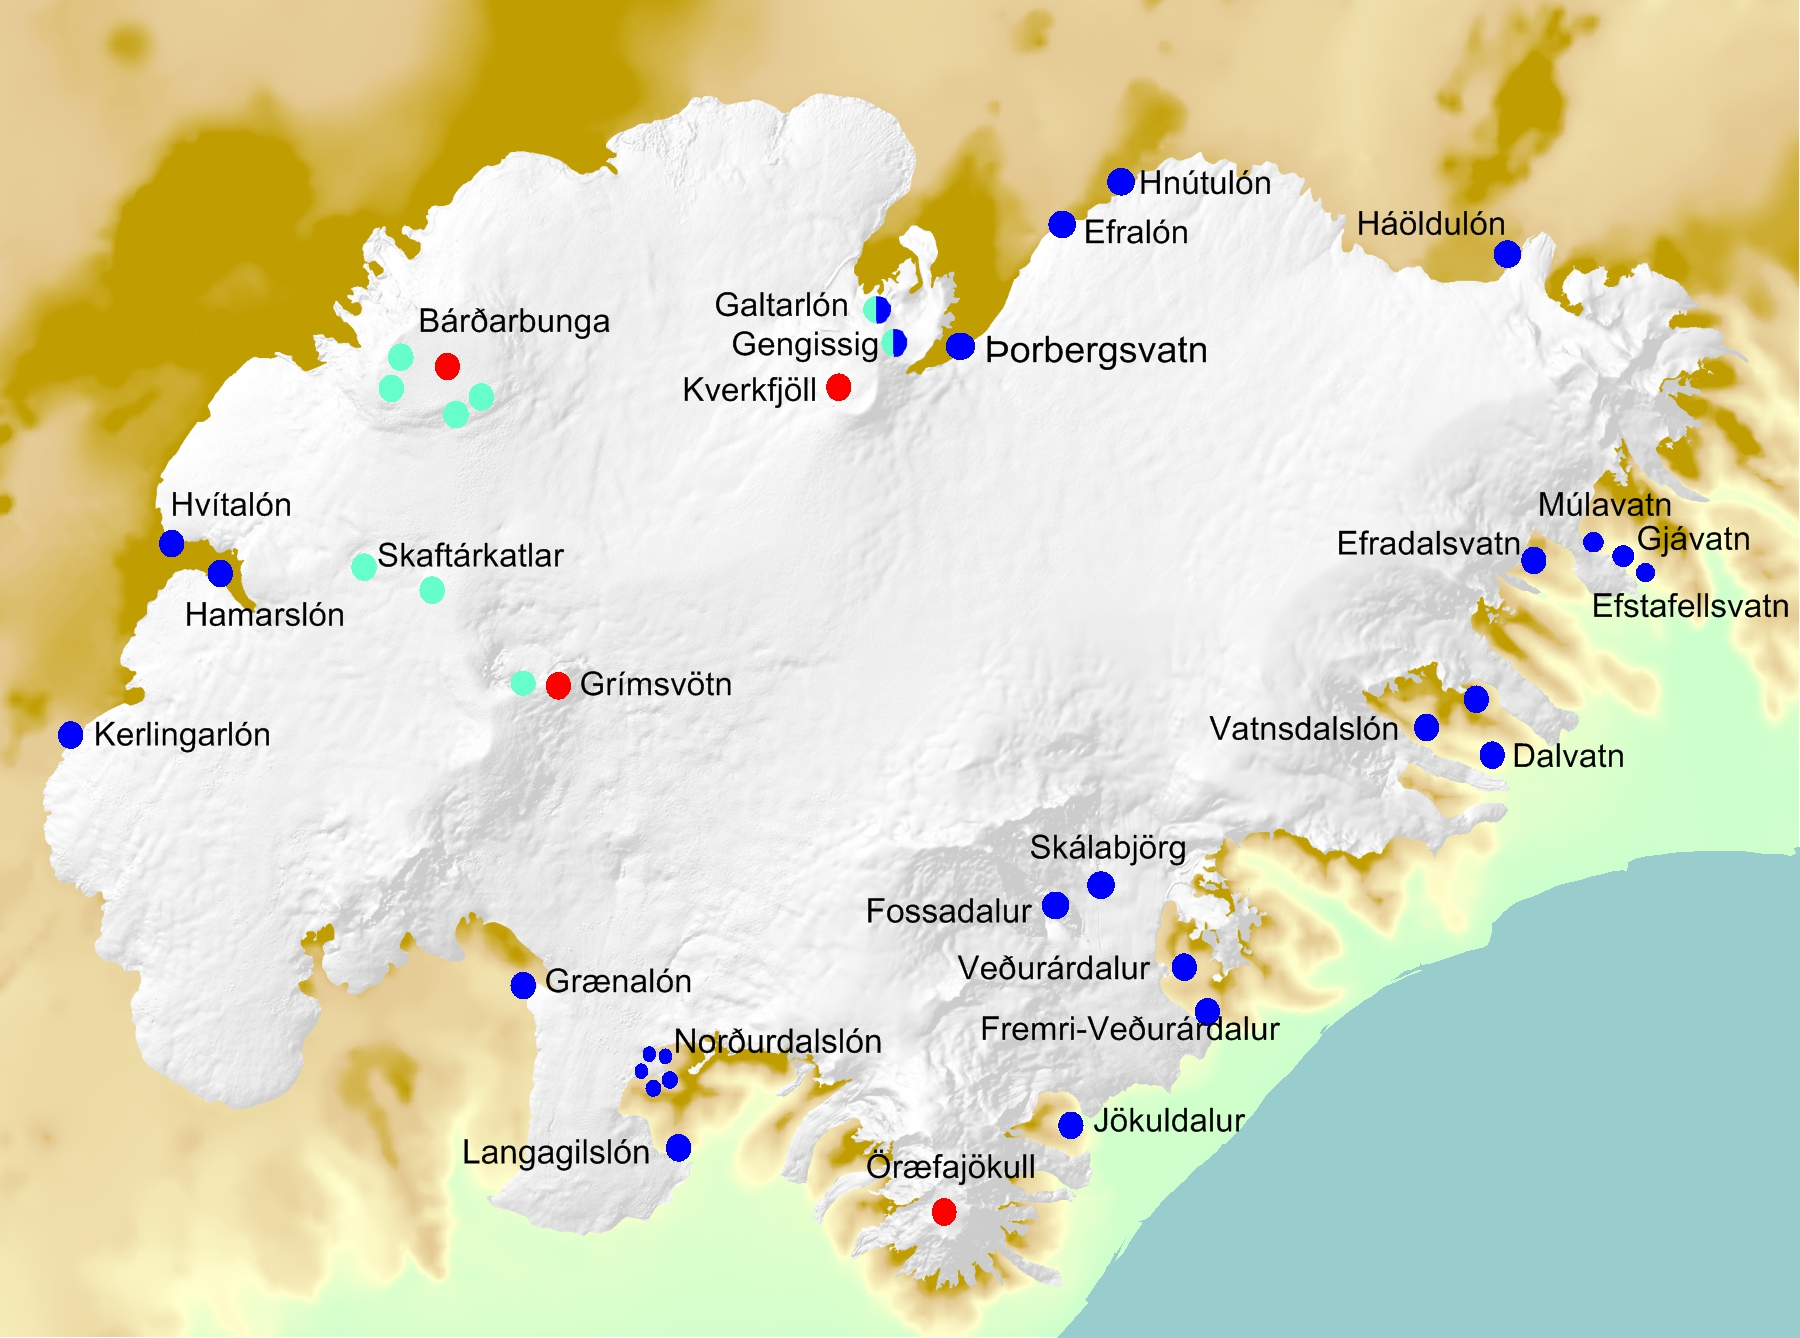 Map showing the origin of jökulhlaups in Vatnajökull. Red: subglacial eruptions, blue: ice-dammed lakes (present and previous), green: subglacial geothermal activity, however Gengissig lake in Kverkfjöll,  is also ice-dammed.